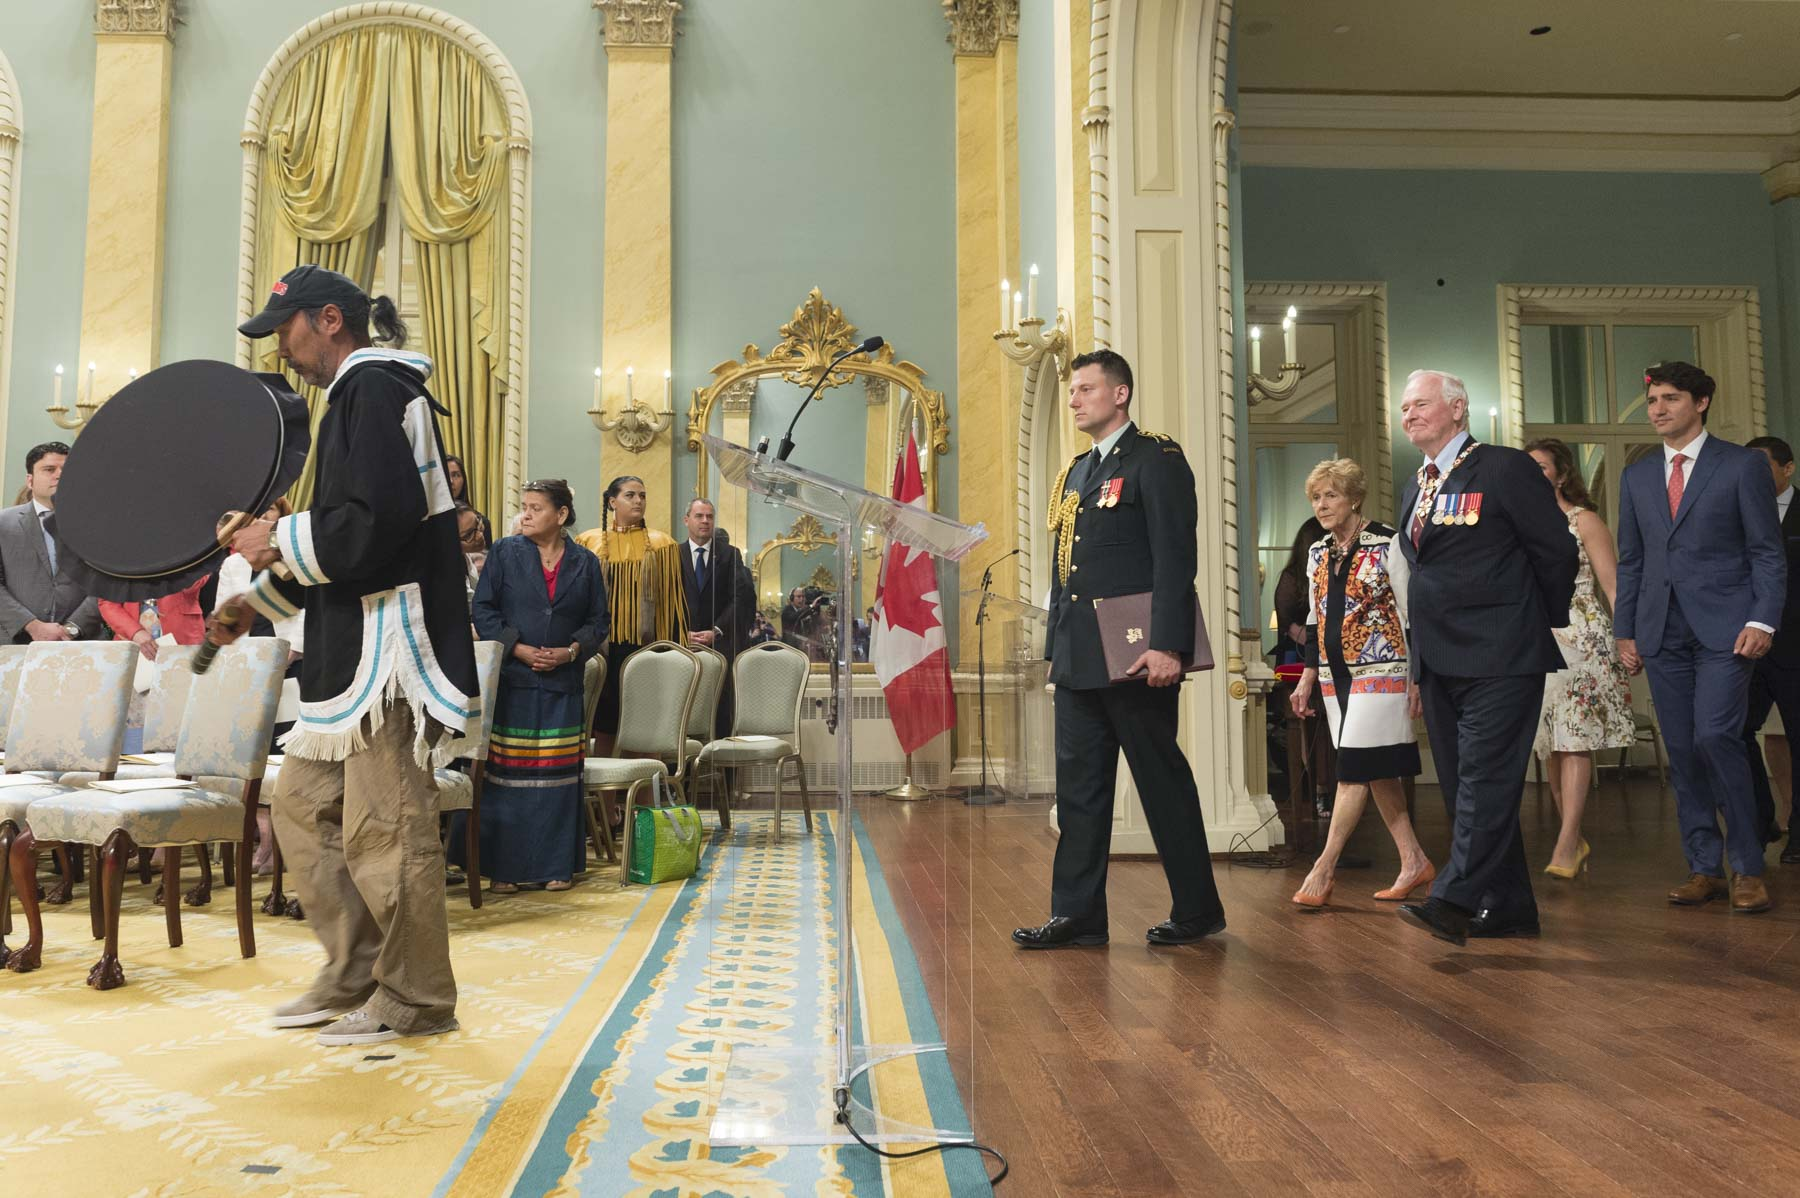 The Governor General presented honours in recognition of outstanding Indigenous leadership to 29 recipients during a ceremony on June 19, 2017 at Rideau Hall. The Right Honourable Justin Trudeau, Prime Minister of Canada, was in attendance, along with other dignitaries and special guests. Inuit Elder July Papatsie led the procession by drum at the beginning of the ceremony.